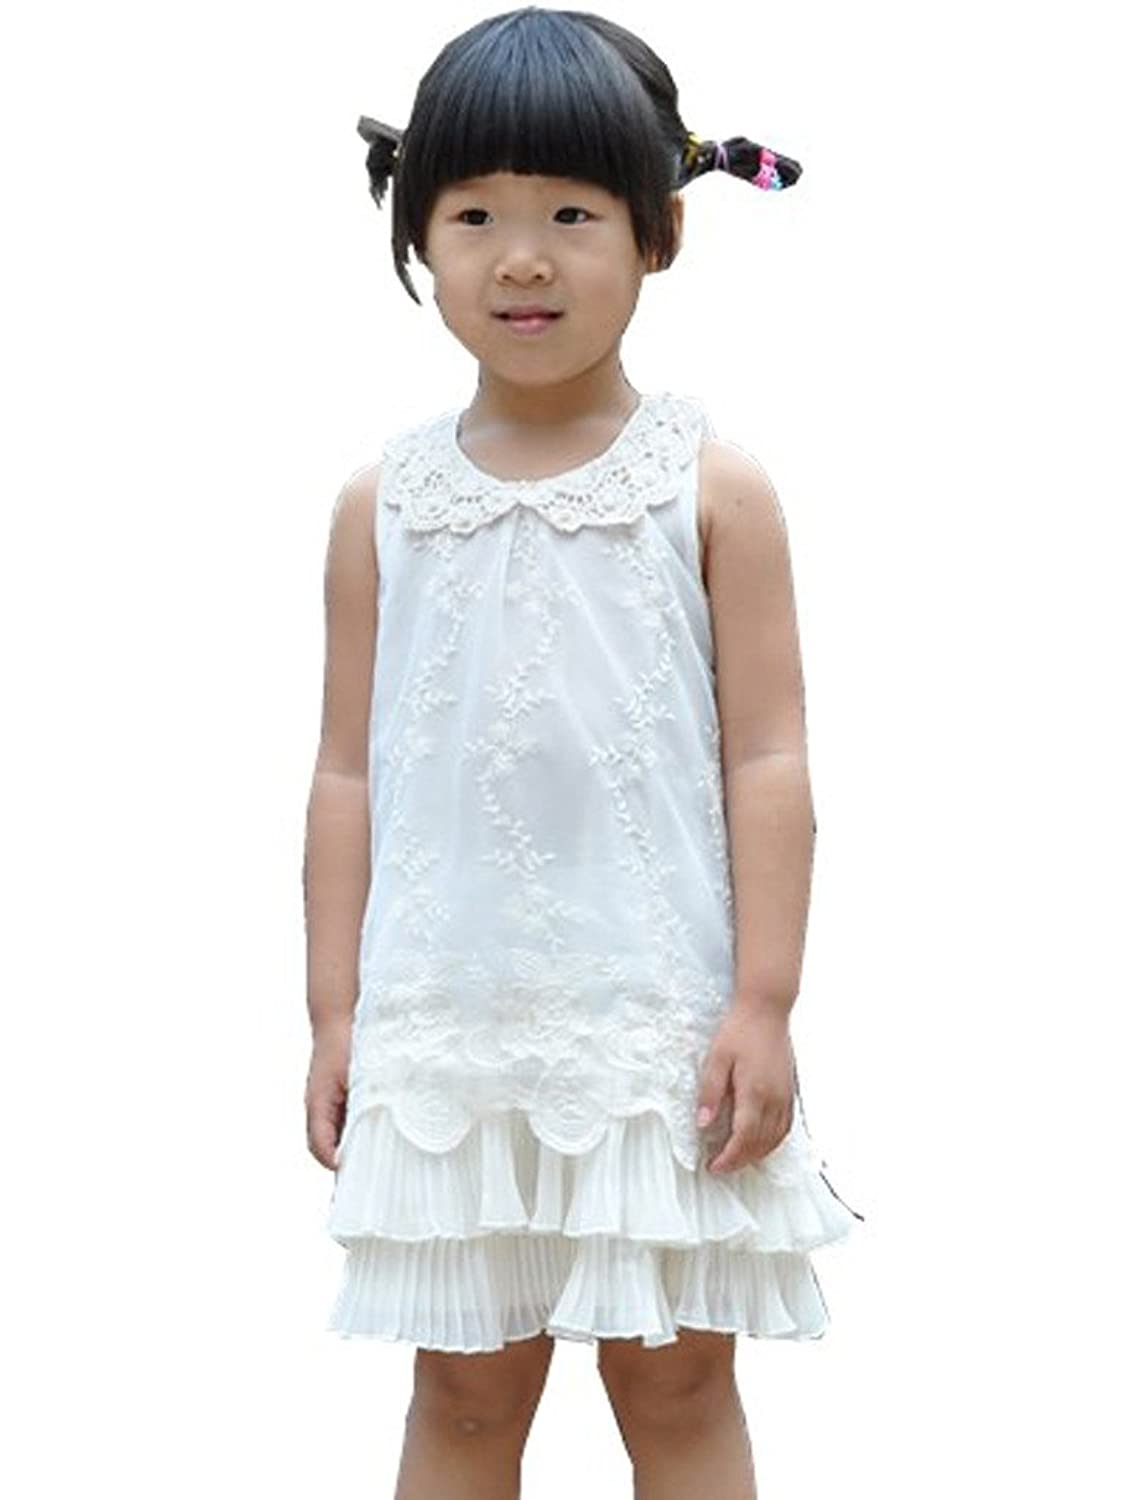 1920s Children Fashions: Girls, Boys, Baby Costumes Bow Dream Vintage Flower Girls Dress $29.99 AT vintagedancer.com